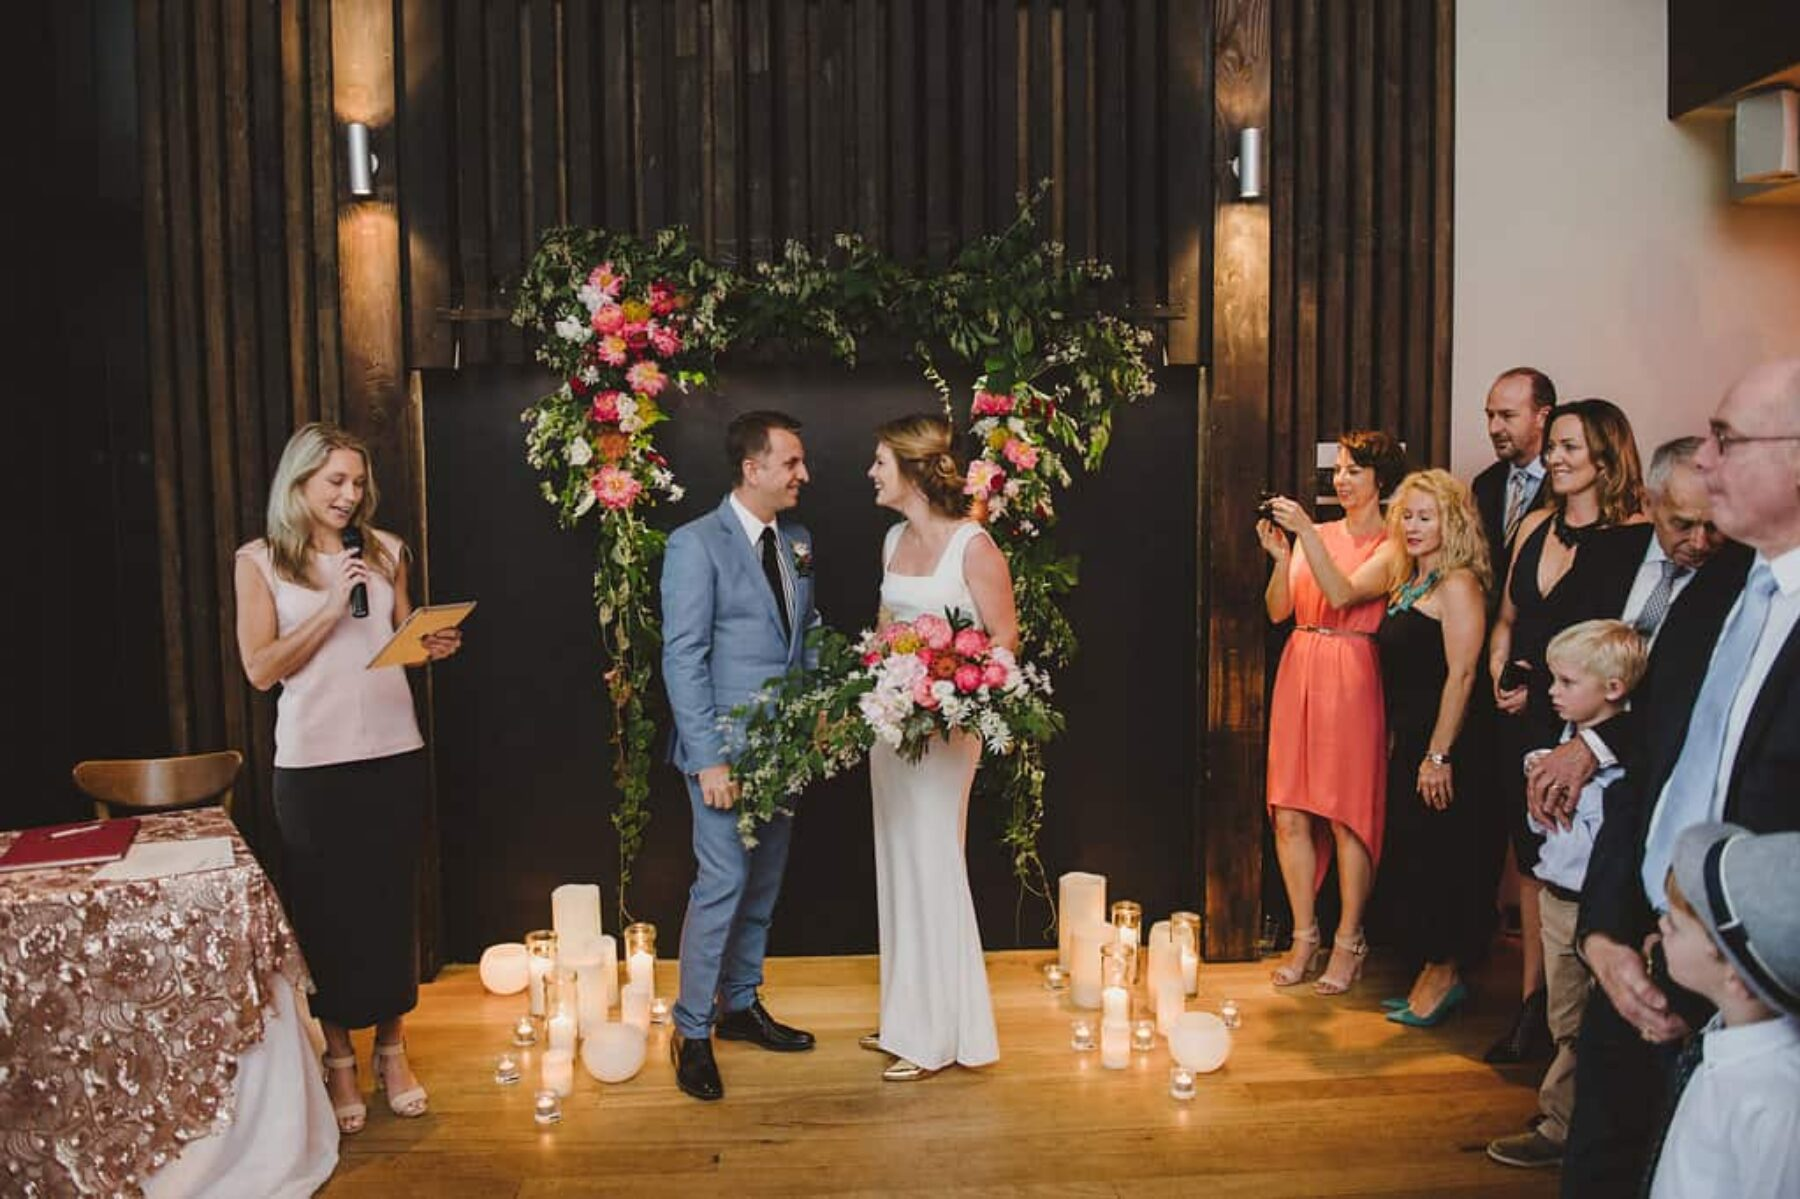 Modern Sydney wedding at Cafe Morso - photography by Lauren Campbell